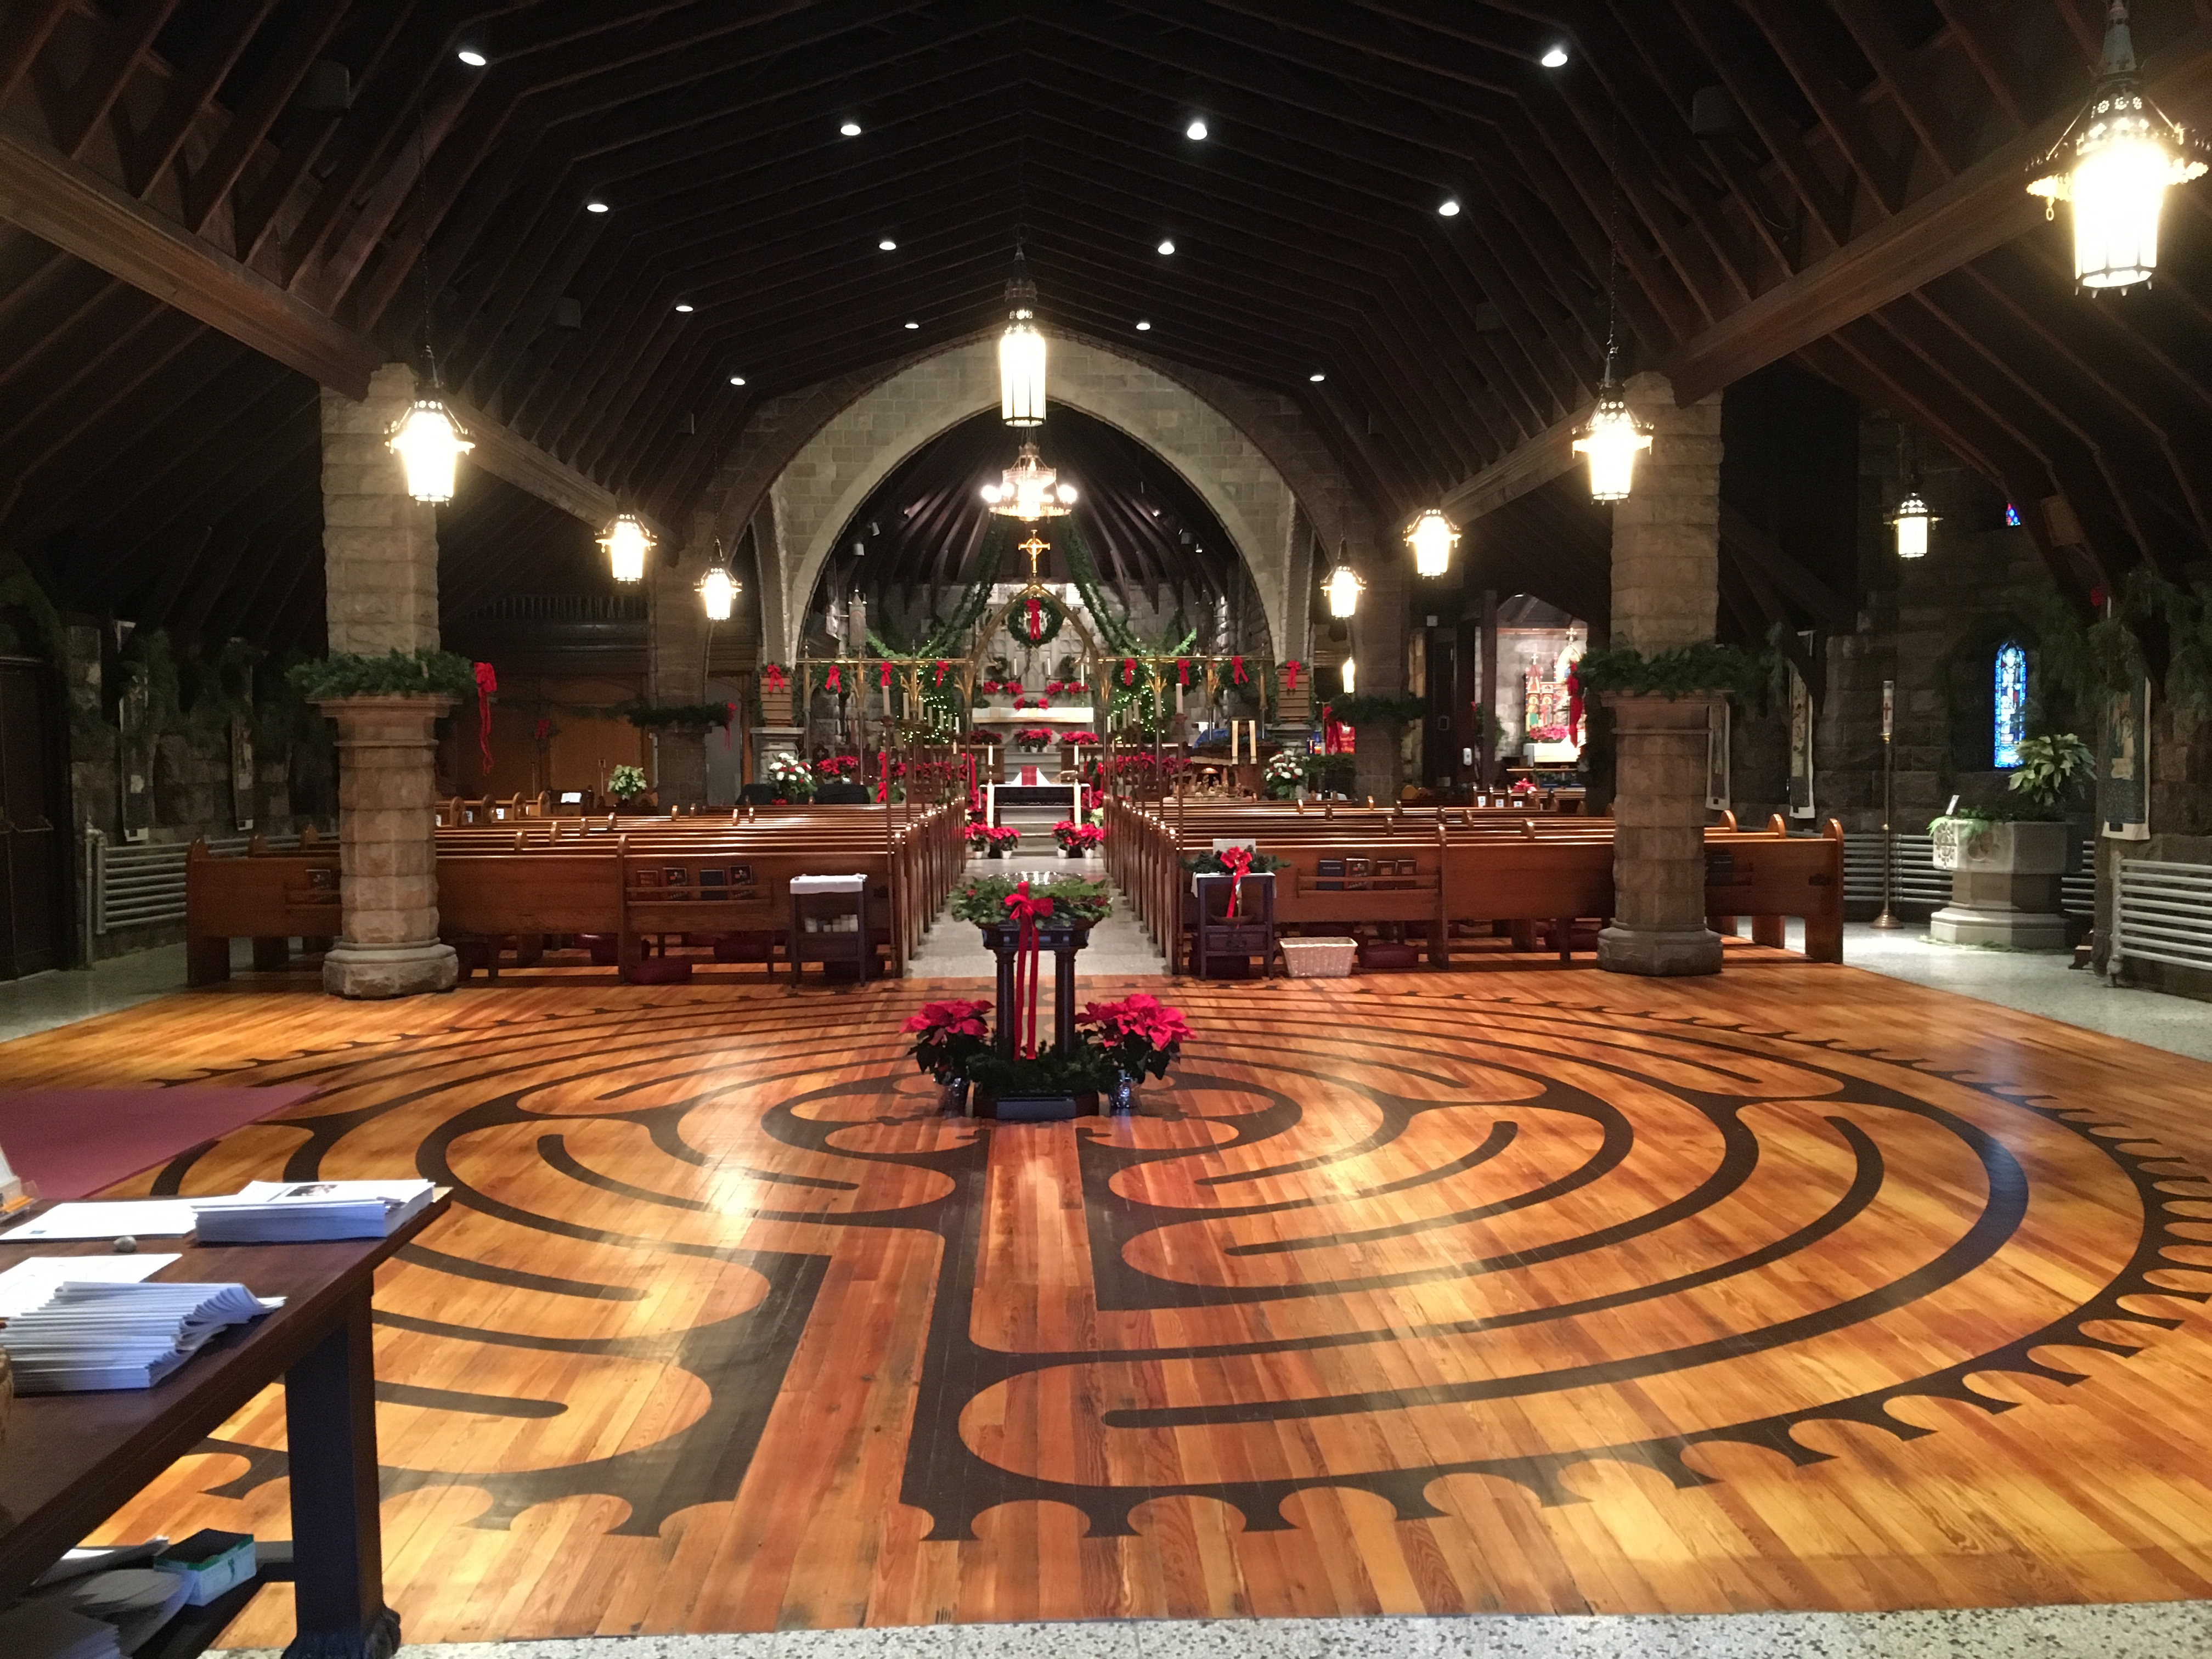 The labyrinth at Christ Church, Bloomfield/Glen Ridge.